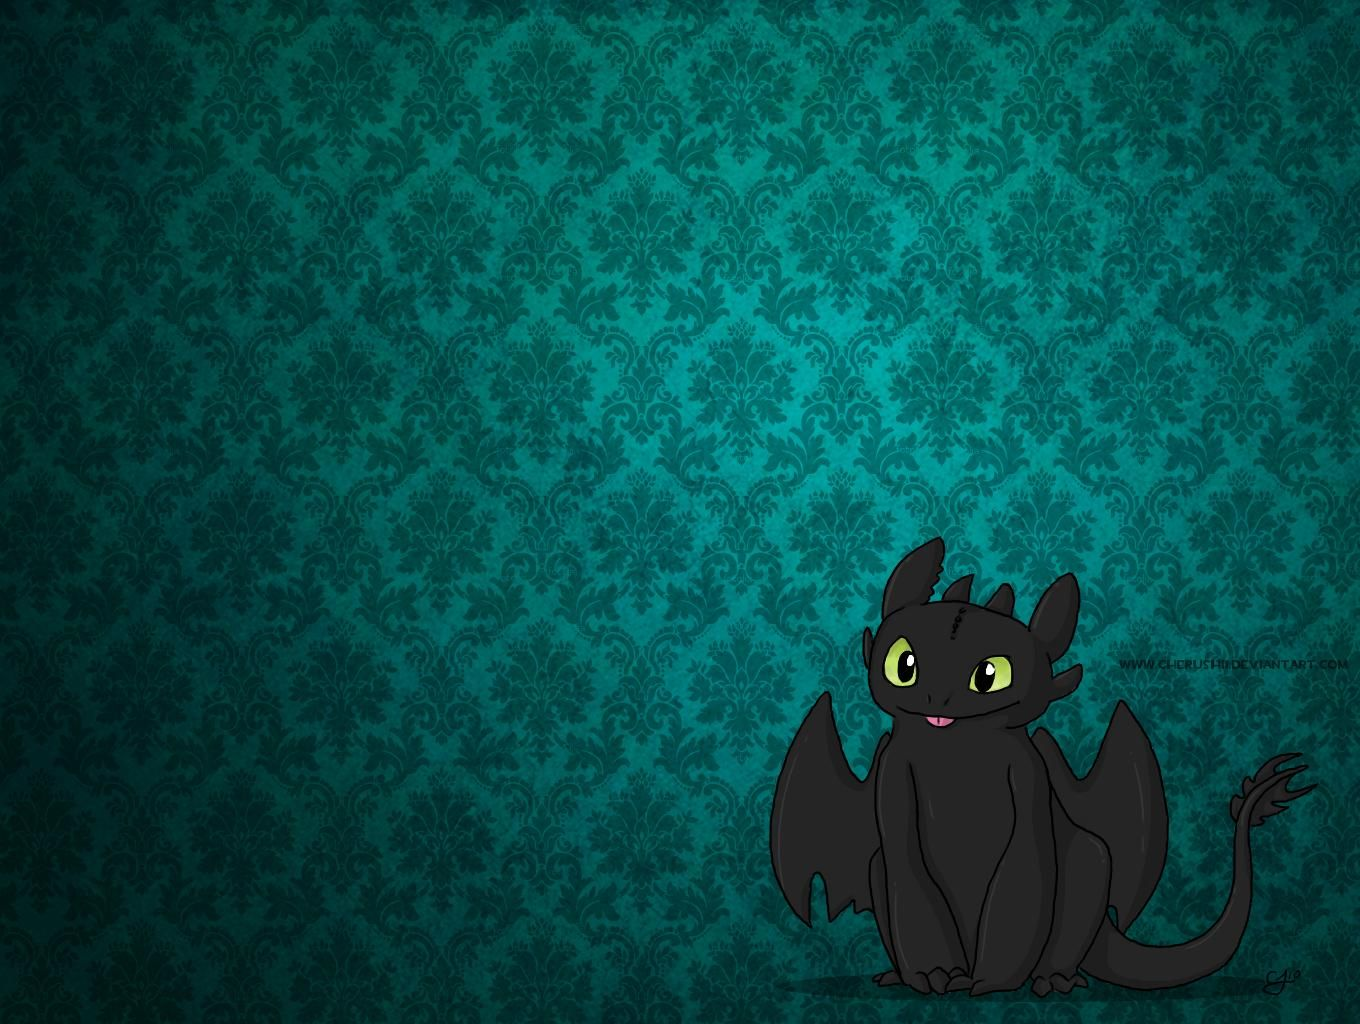 Toothless Wallpapers Toothless Wallpaper How To Train Your Dragon Cute Toothless